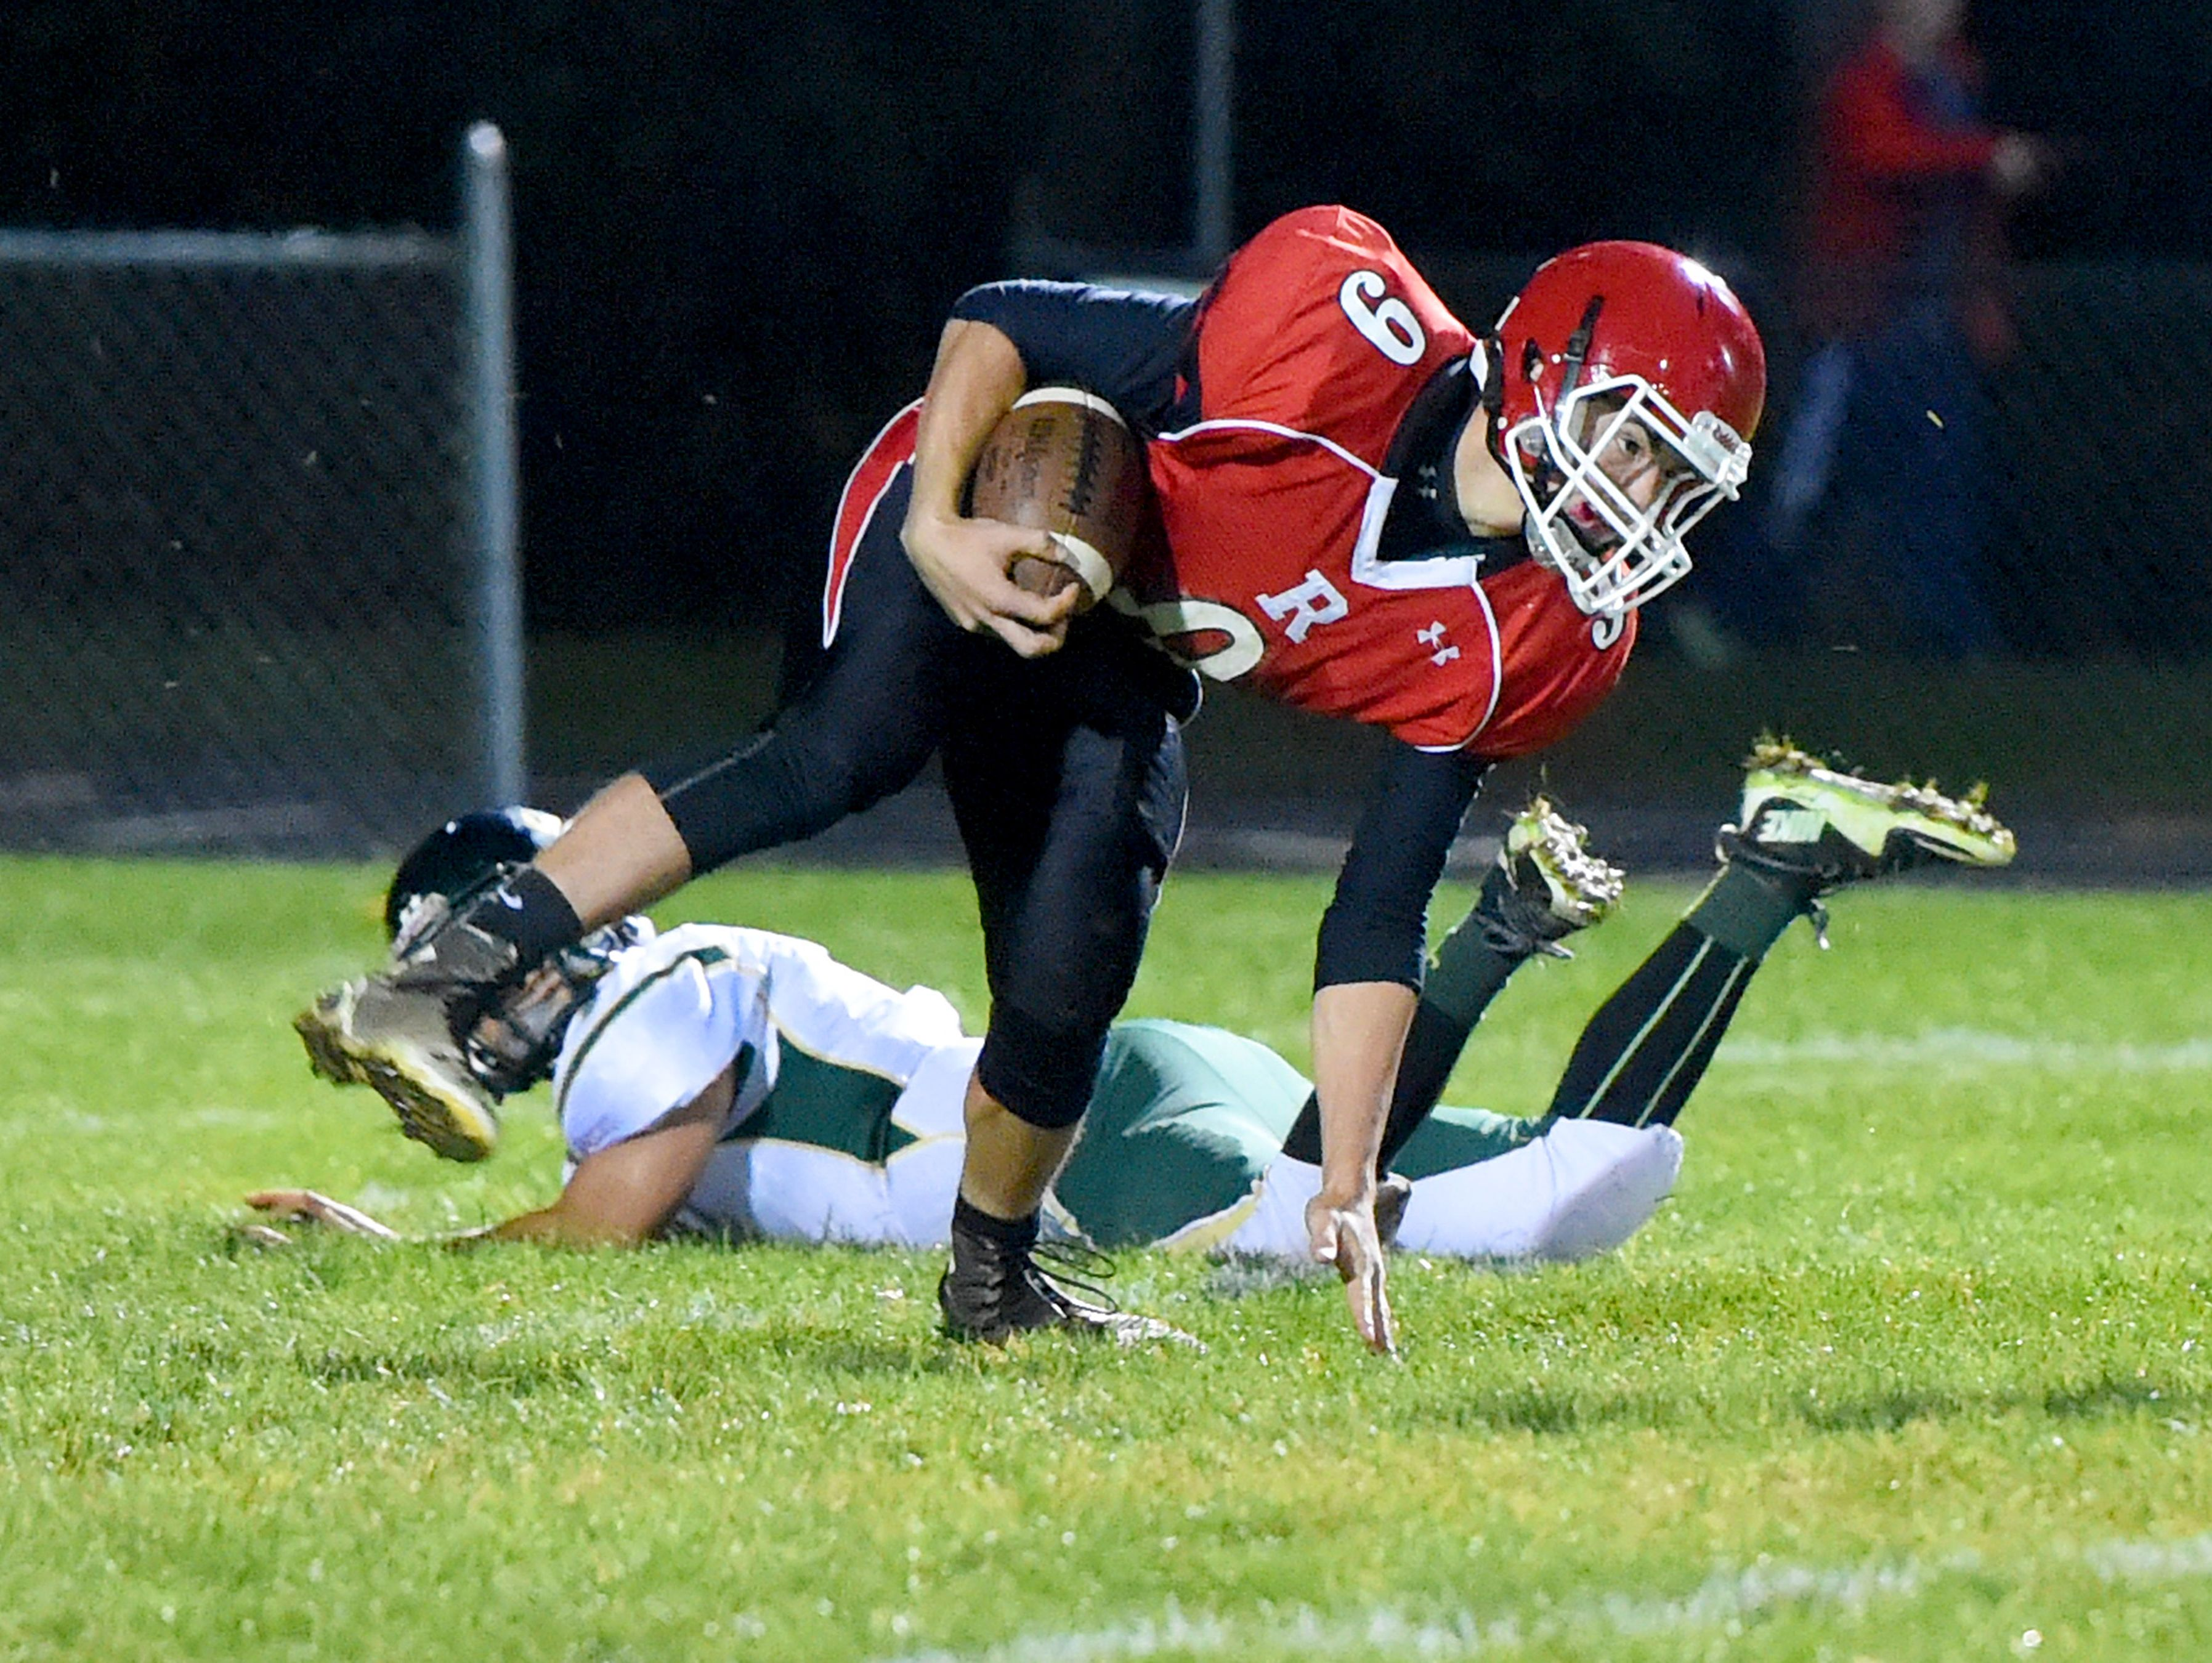 Riverheads' Tyler Smith stays on his feet with the ball after jumping over Wilson Memorial's Logan Leche to avoid the tackle during a football game played in Greenville on Friday, Oct. 21, 2016.